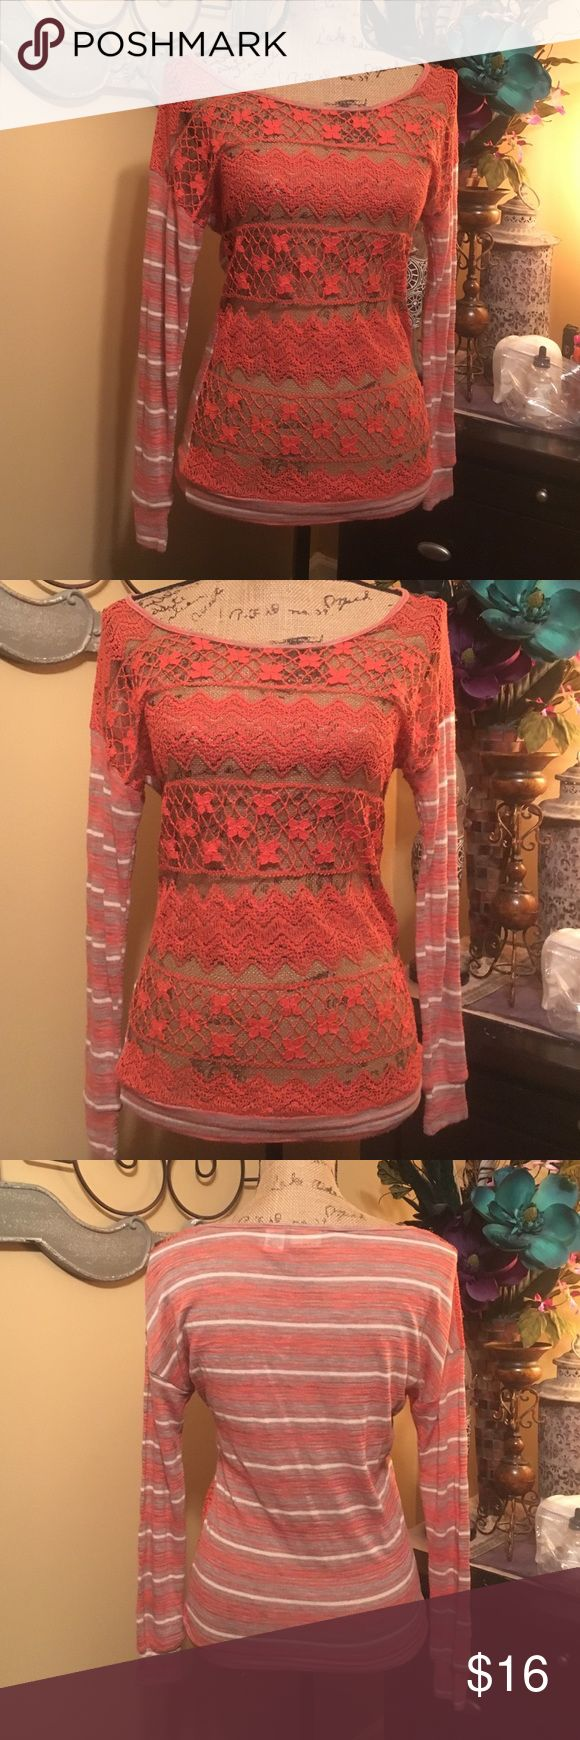 """Daytrip Top Soft gray, orange & cream stripped cotton top with open woven orange lace front. Long sleeves & stripped cotton bottom front trim. Sz XS. In great condition except a small hole in the front open mesh on the left shoulder. Slouchy style underarm fit with 36"""" stretchable bust & 24"""" length Daytrip Tops"""